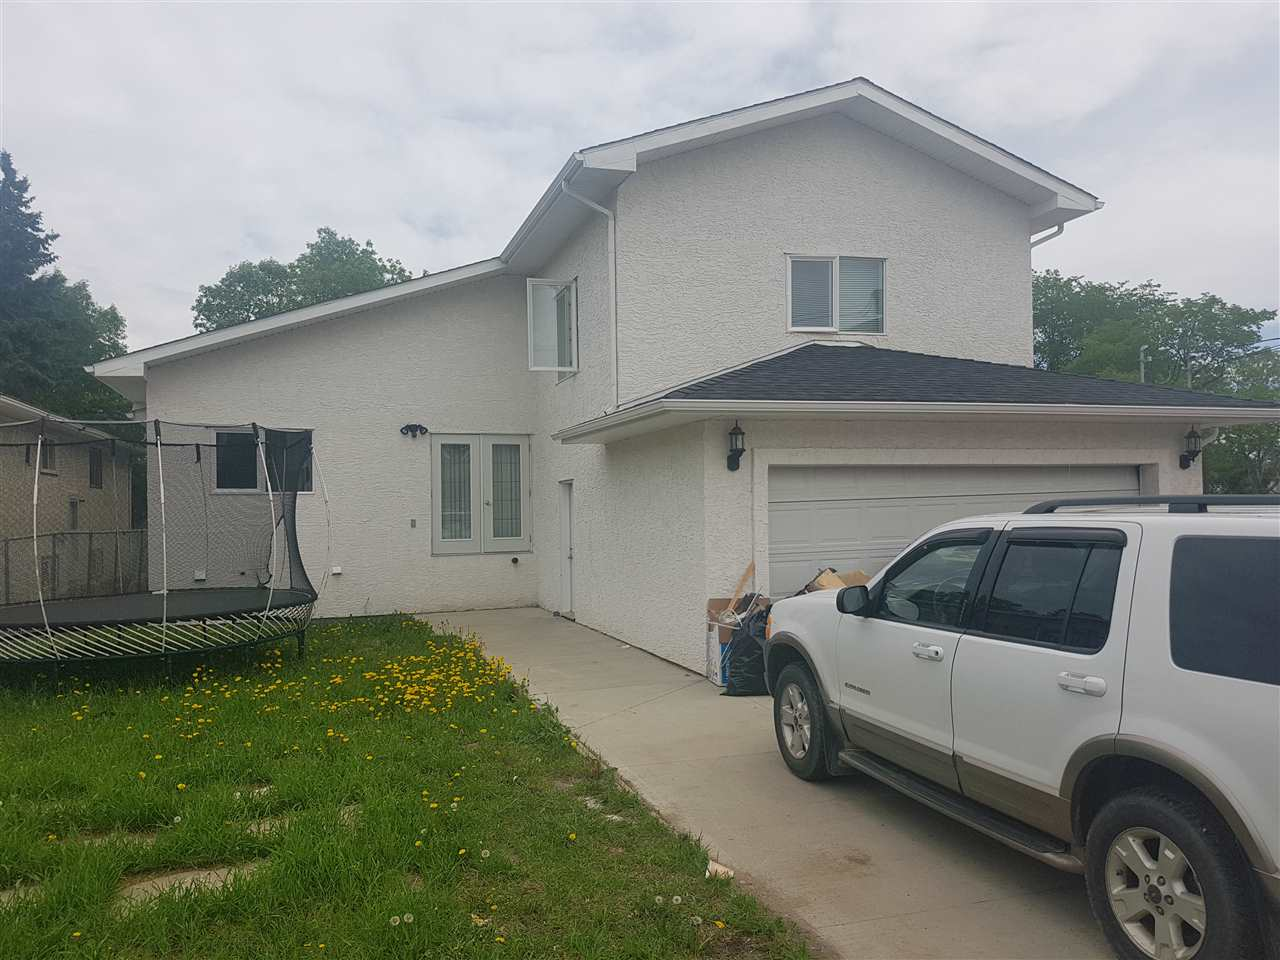 Main Photo: 9526 155 Street in Edmonton: Zone 22 House for sale : MLS® # E4069125